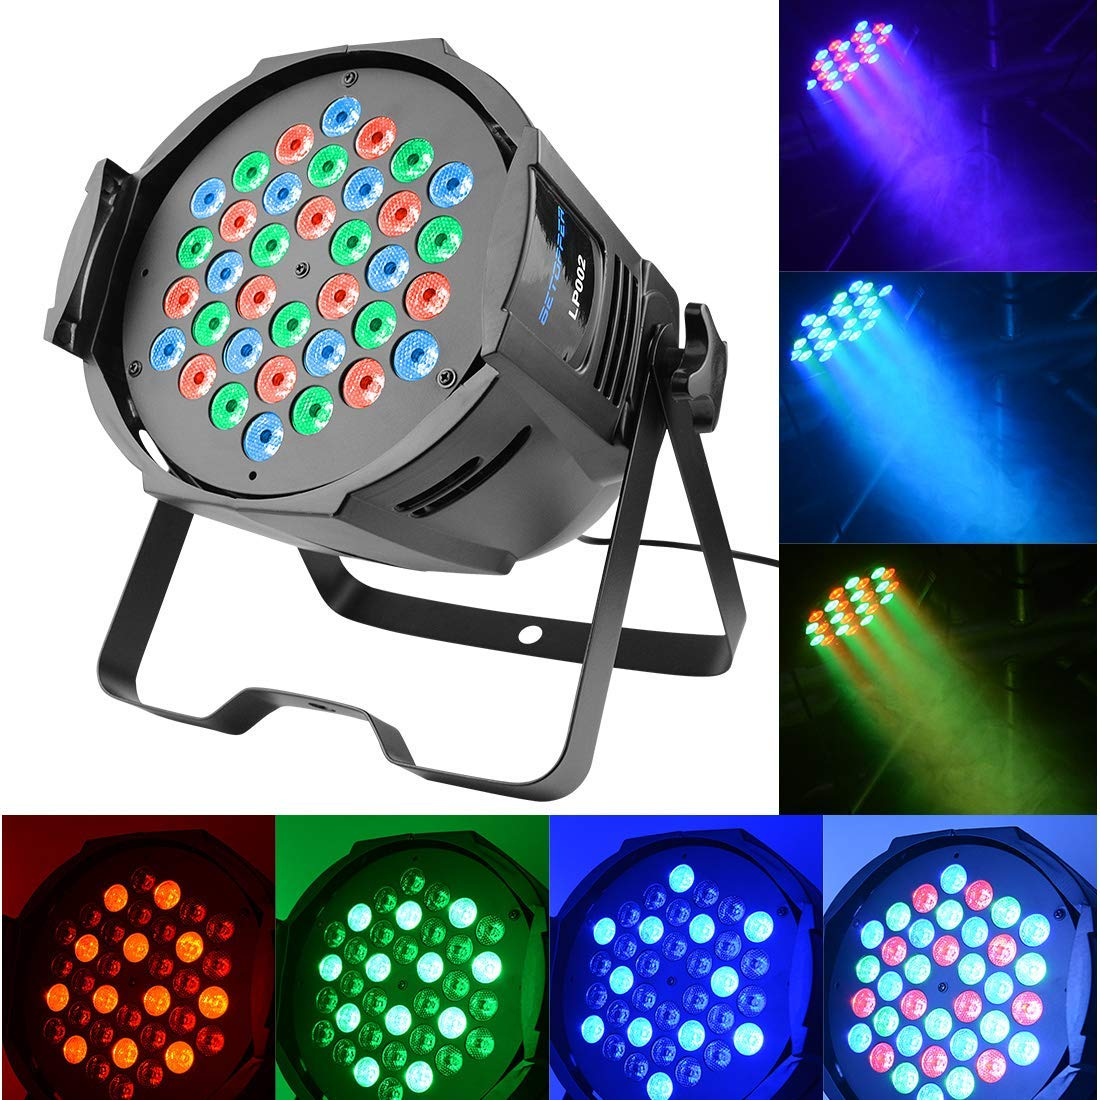 Stage Lighting Effect Commercial Lighting Cheap Led Background 18pcs*10w 4 In 1 Rgbw Led Wall Washer Dj Stage Light Outdoor Lighting Source For Ktv Disco Party Dmx512